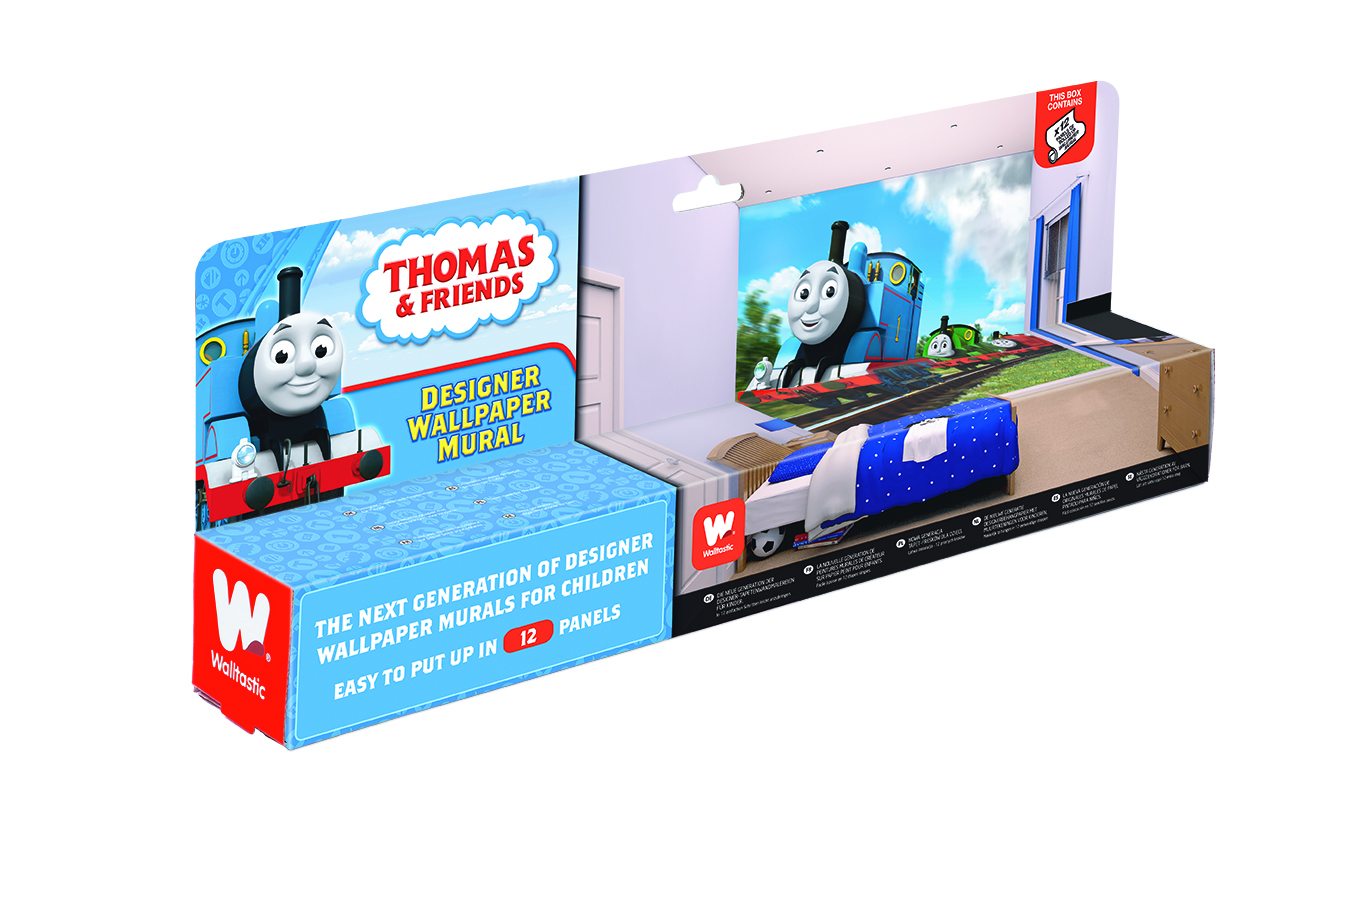 thomas and friends bedroom wallpaper mural 8ft x 10ft walltastic for more information or for details on how to buy this product contact us